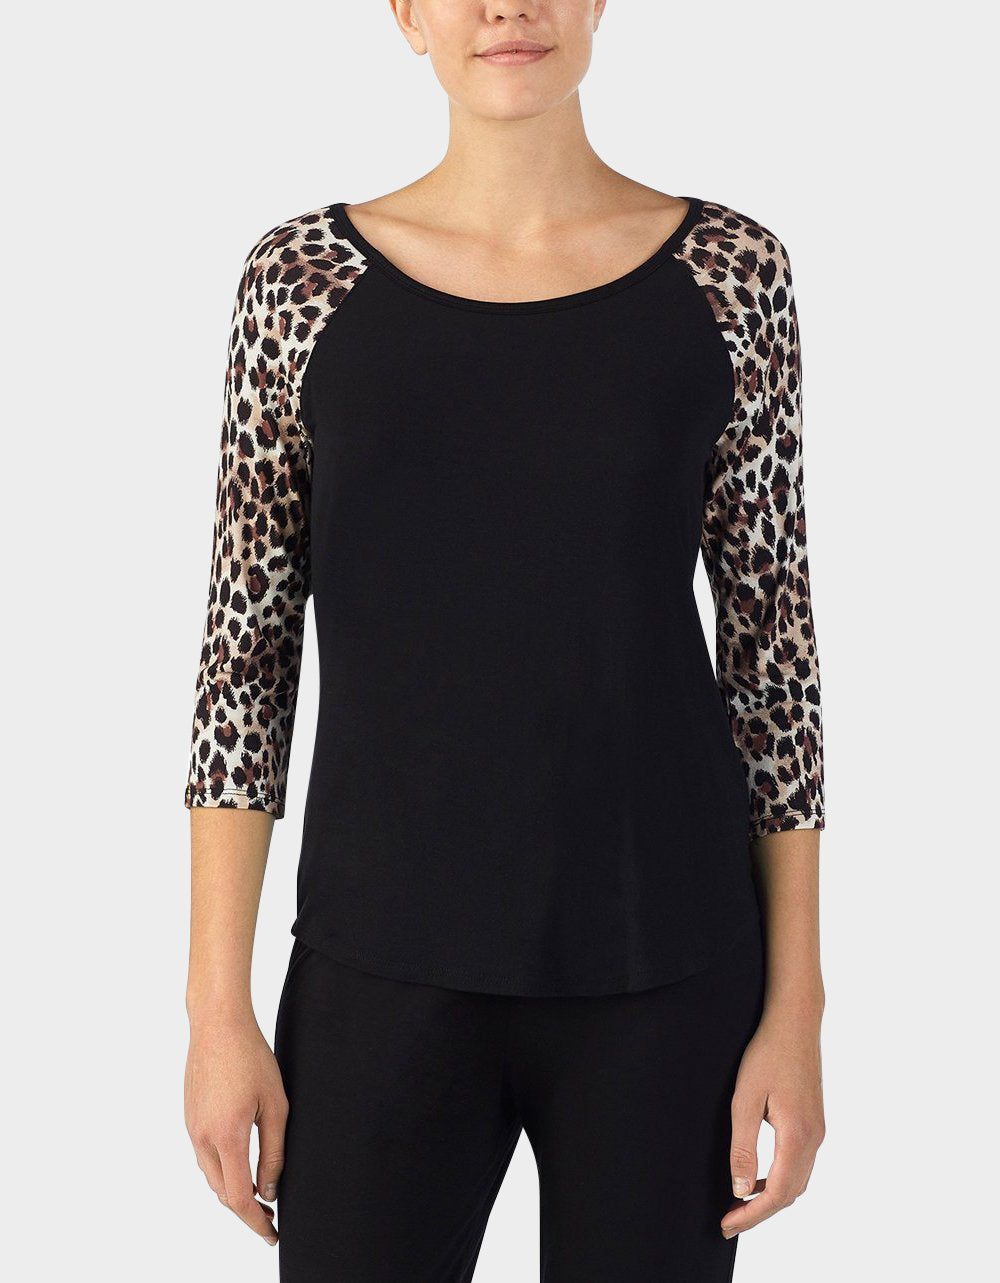 BETSEYS BEST RAYON KNIT TEE LEOPARD - APPAREL - Betsey Johnson